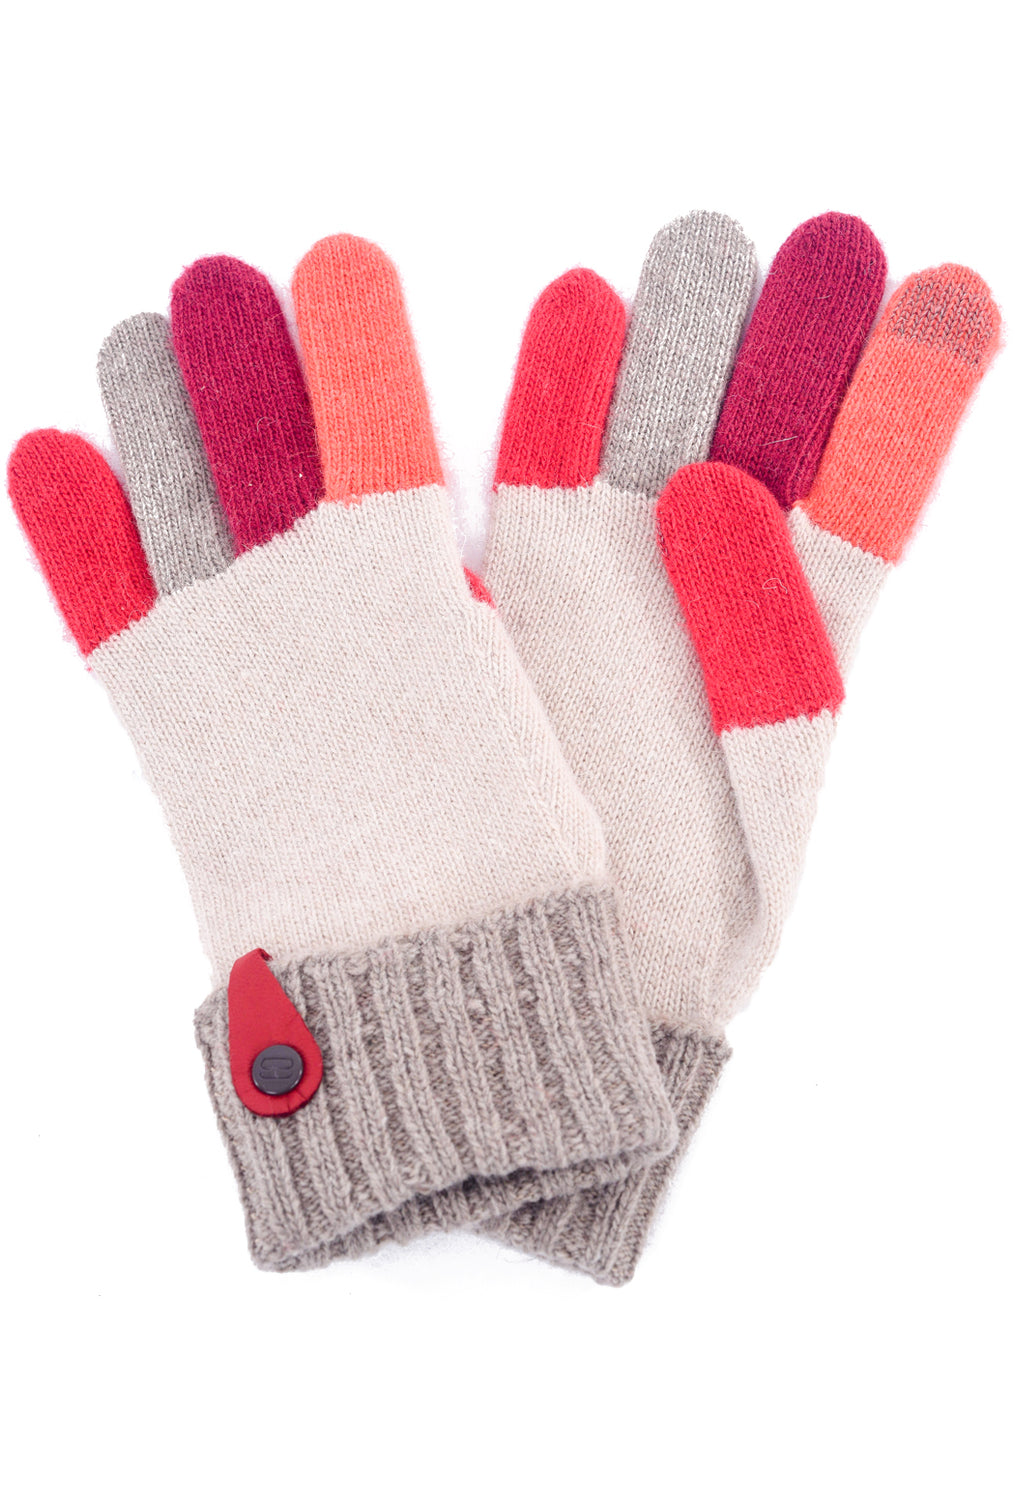 Santacana Madrid Multi-Color Knitted Gloves, Beige/Orange One Size Cream